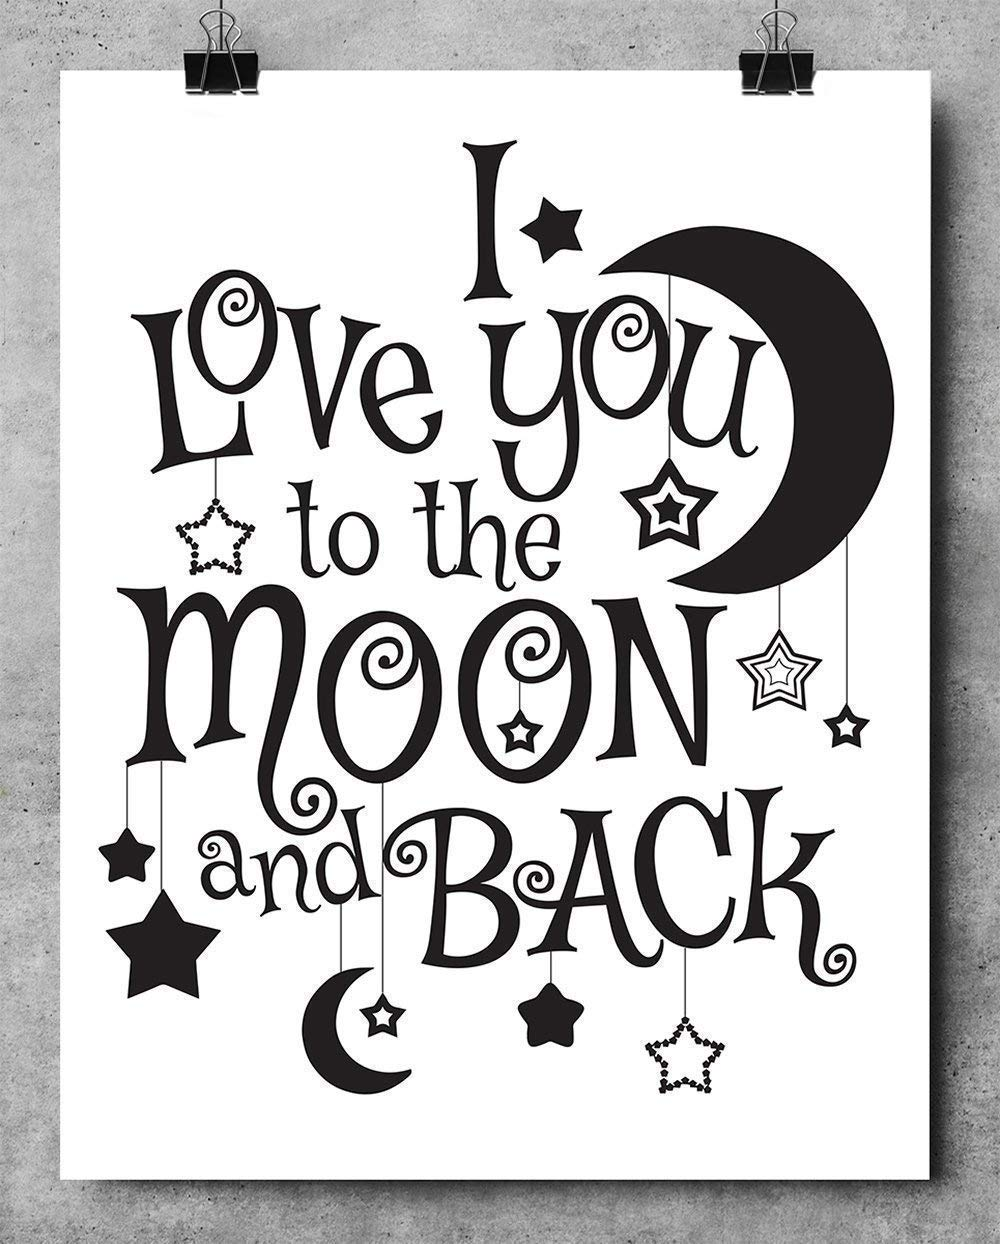 Amazon Com I Love You To The Moon And Back 11x14 Unframed Typography Art Print Great Nursery Room Decor And Gift For Wedding Anniversary And Birthday Under 15 Handmade